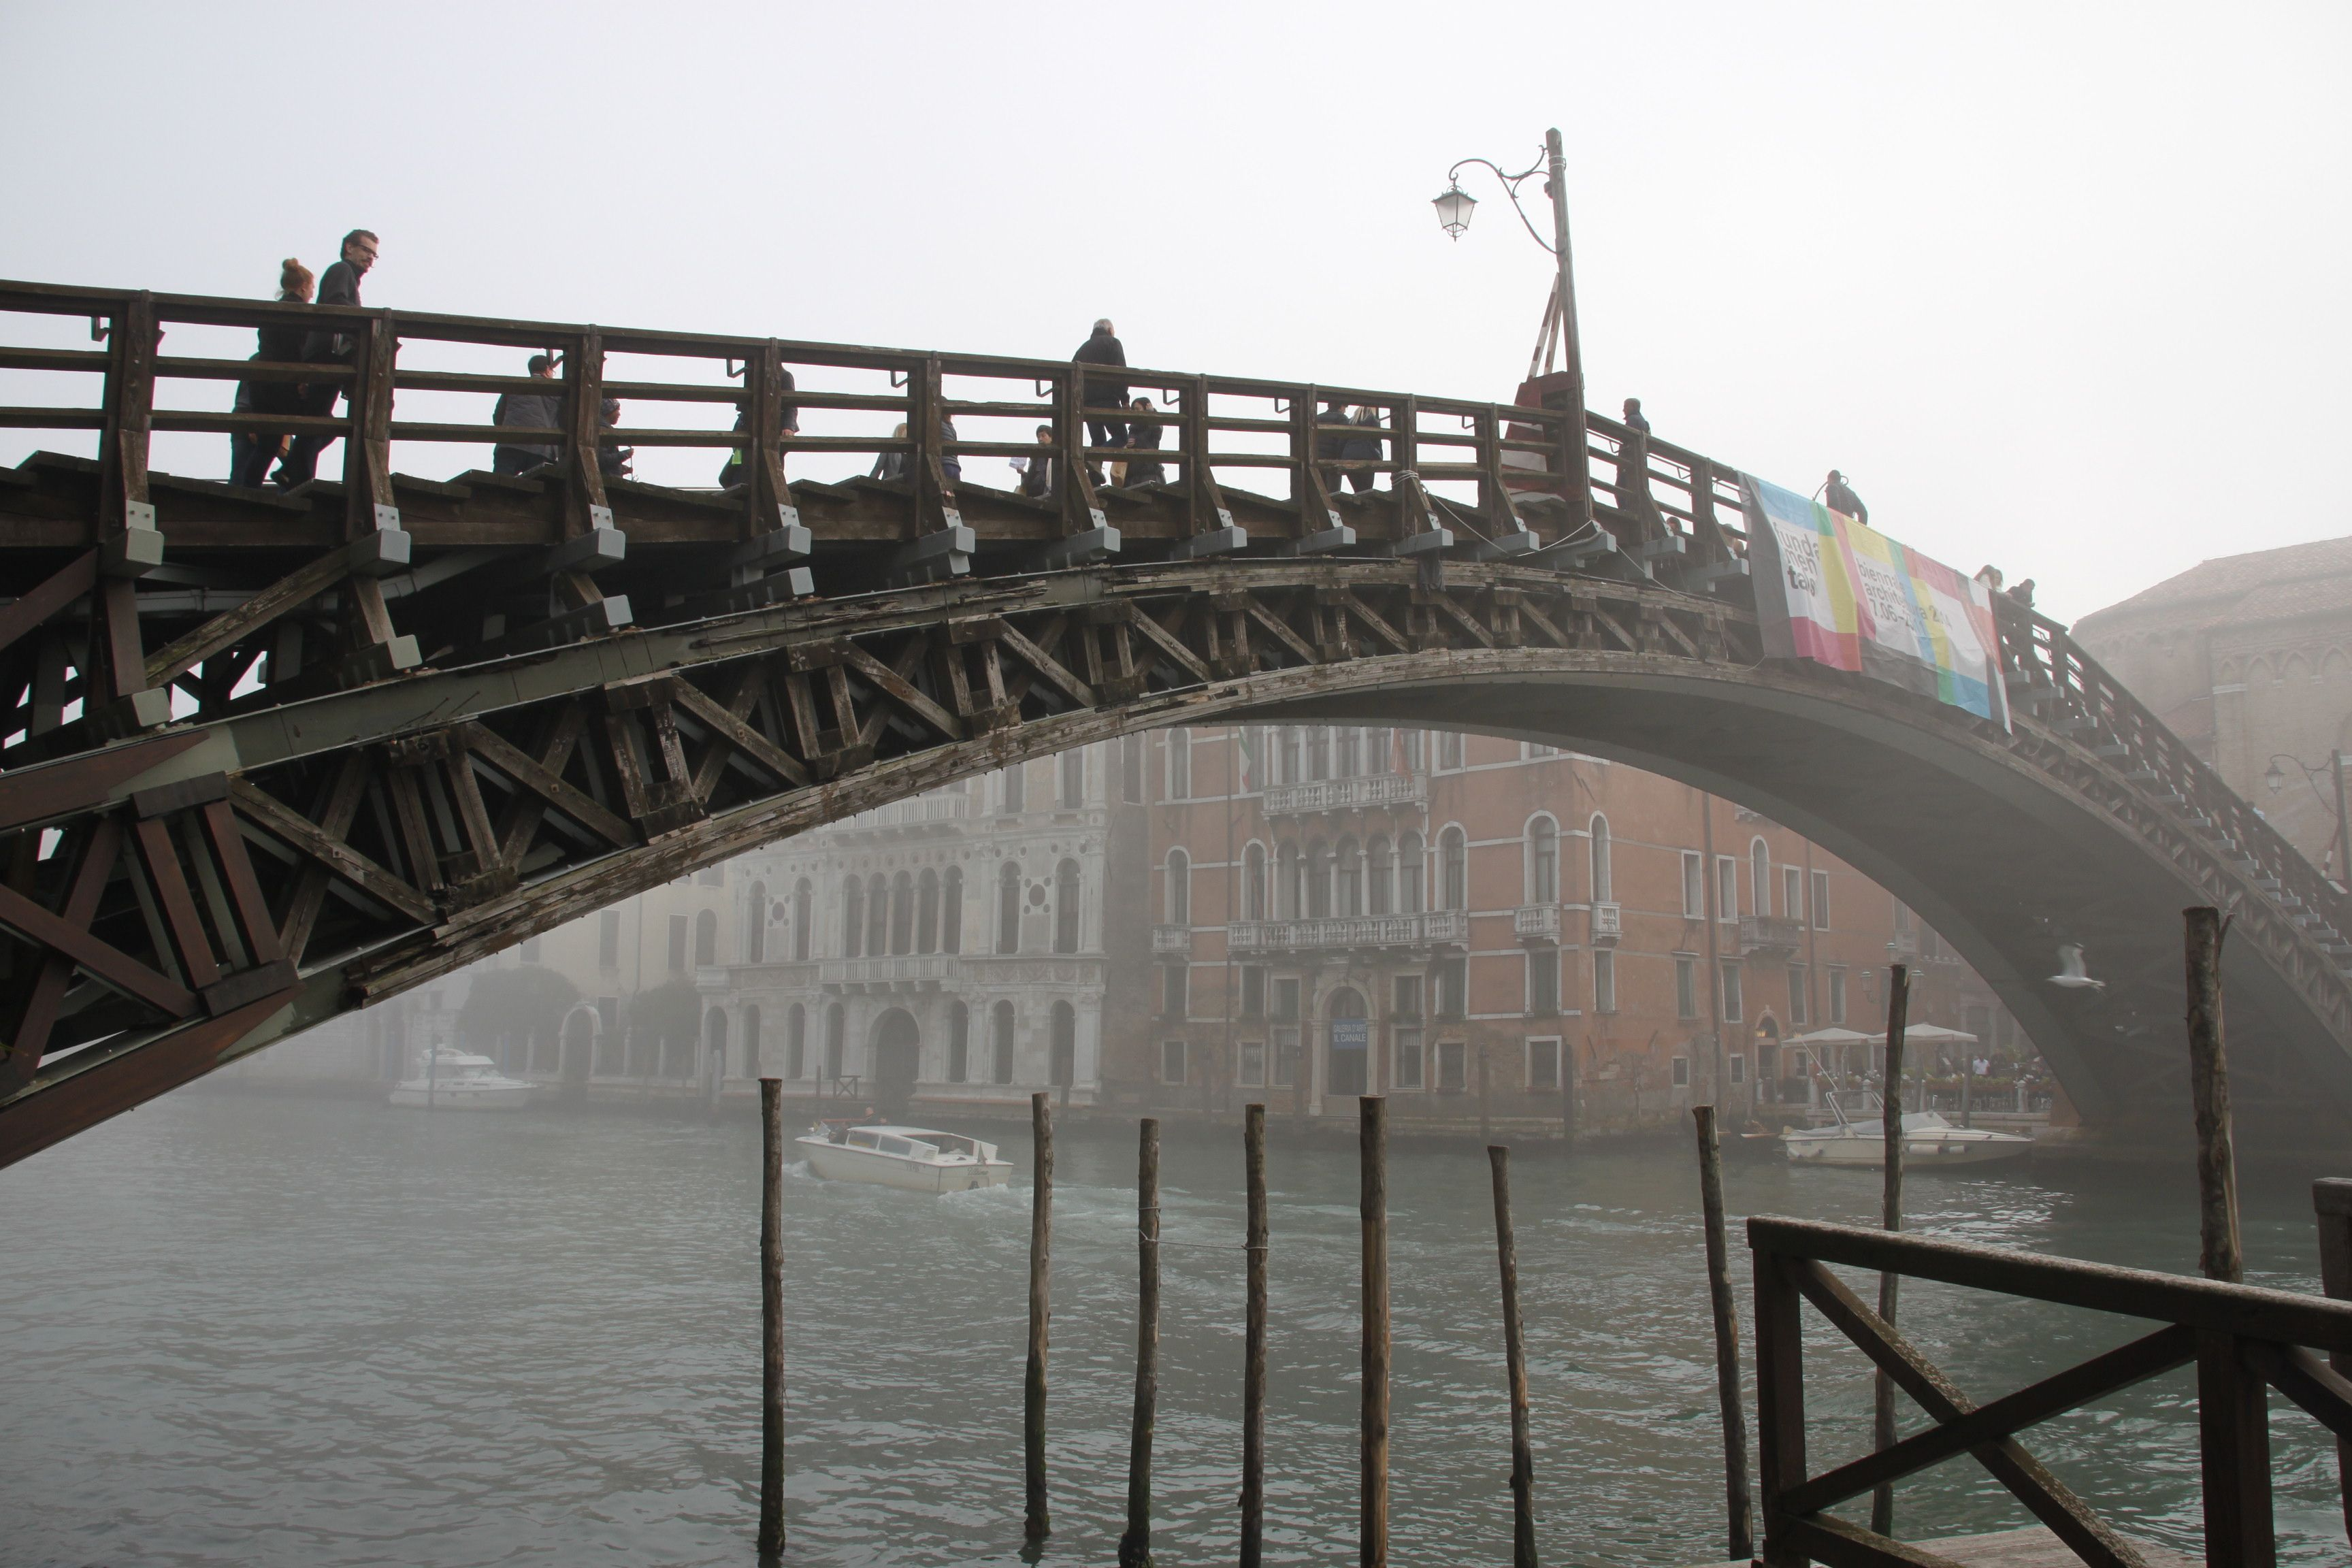 L'Accademia Bridge rises out across the misty Grand Canal